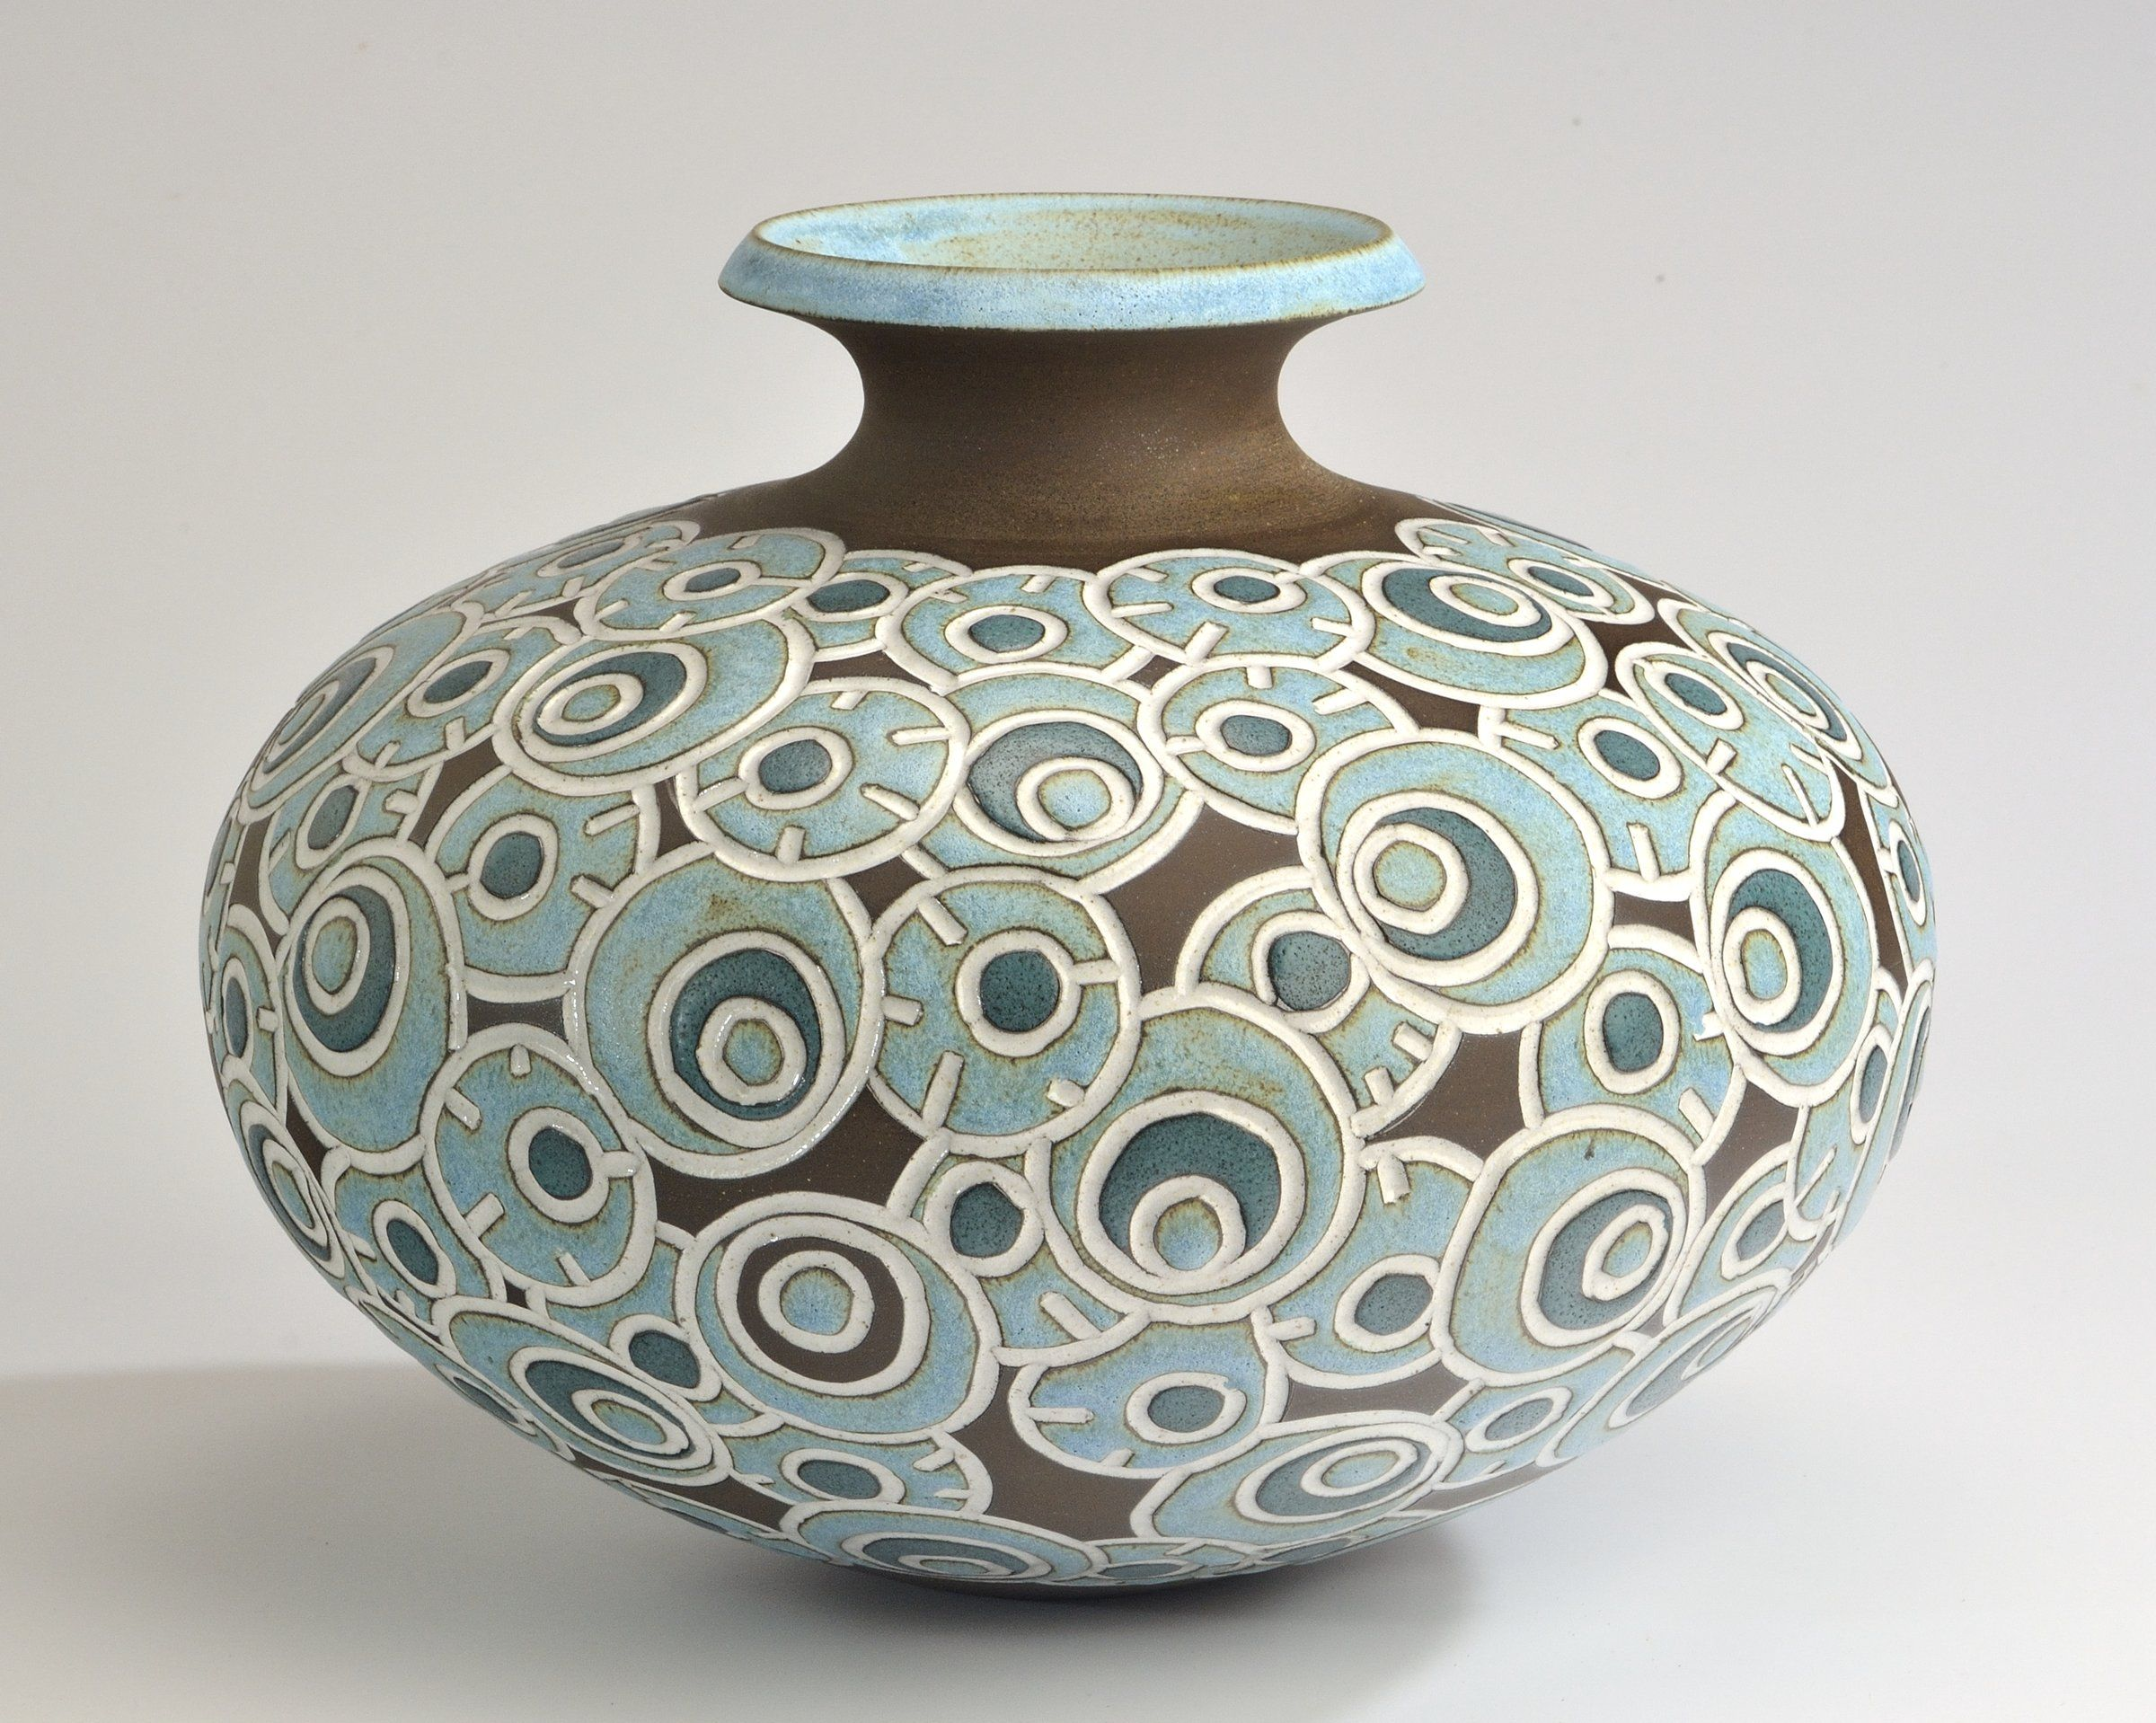 Ceramic vase 2400 1918 pottery ideas pinterest for Ceramic vase ideas